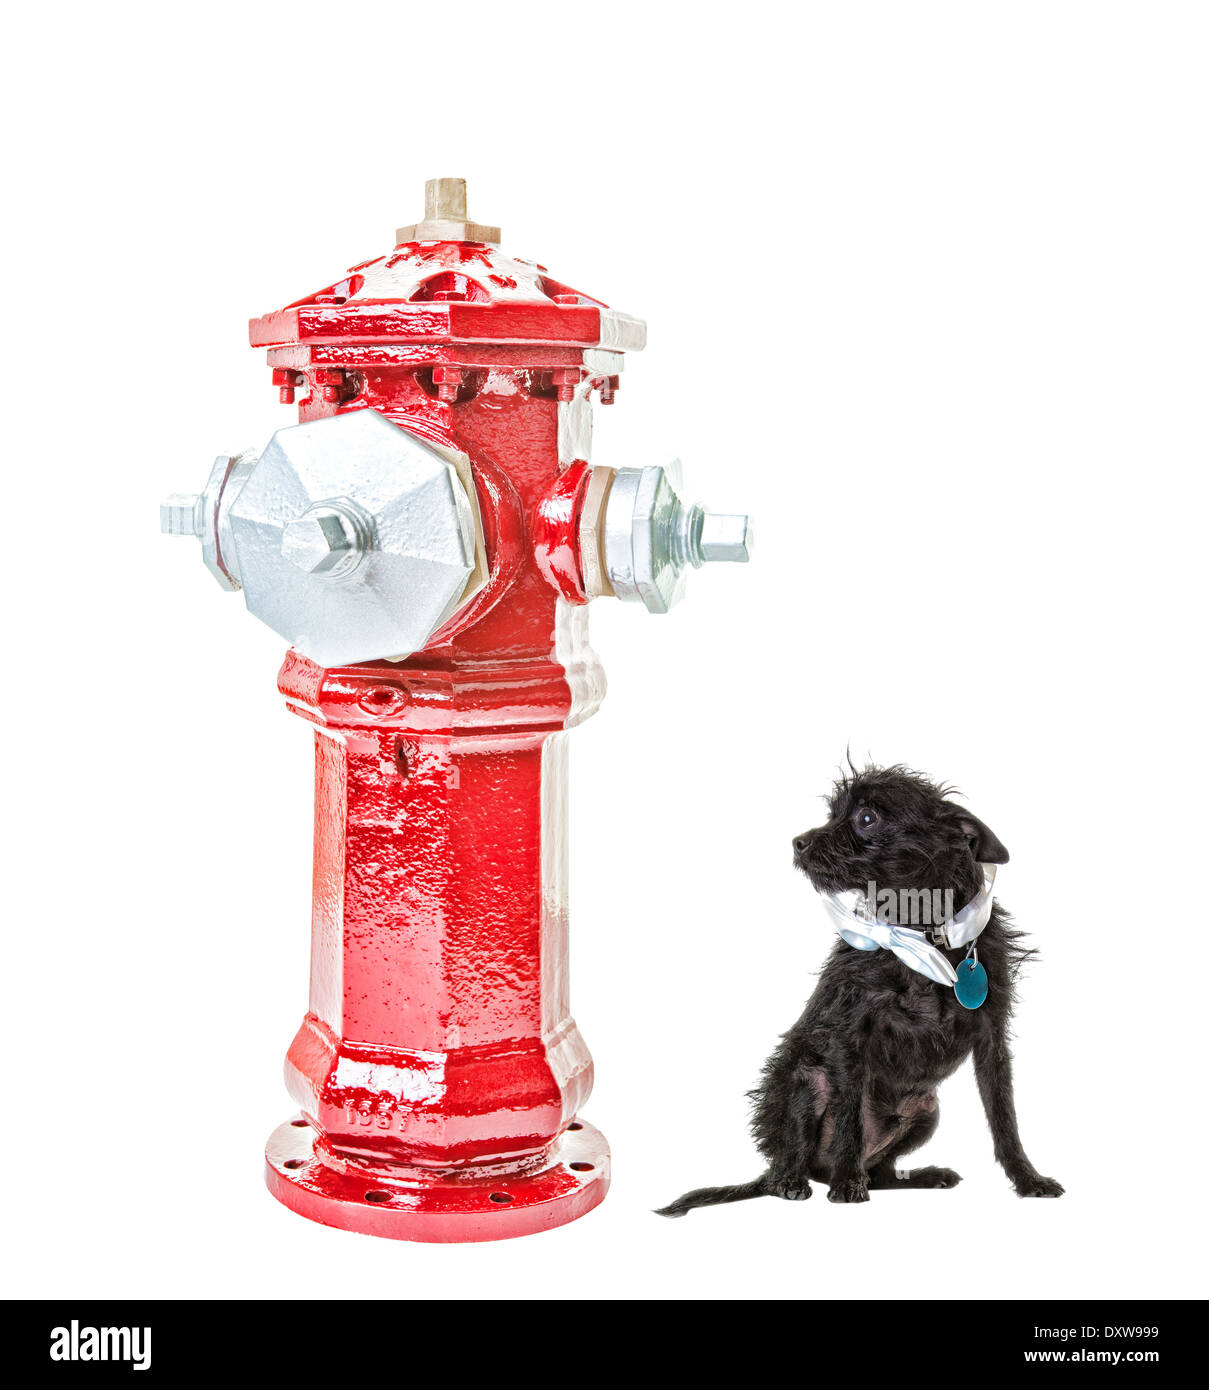 A very small dog intimidated by a very big fire hydrant. Isolated. Hdr. Clipping path for fire hydrant. - Stock Image